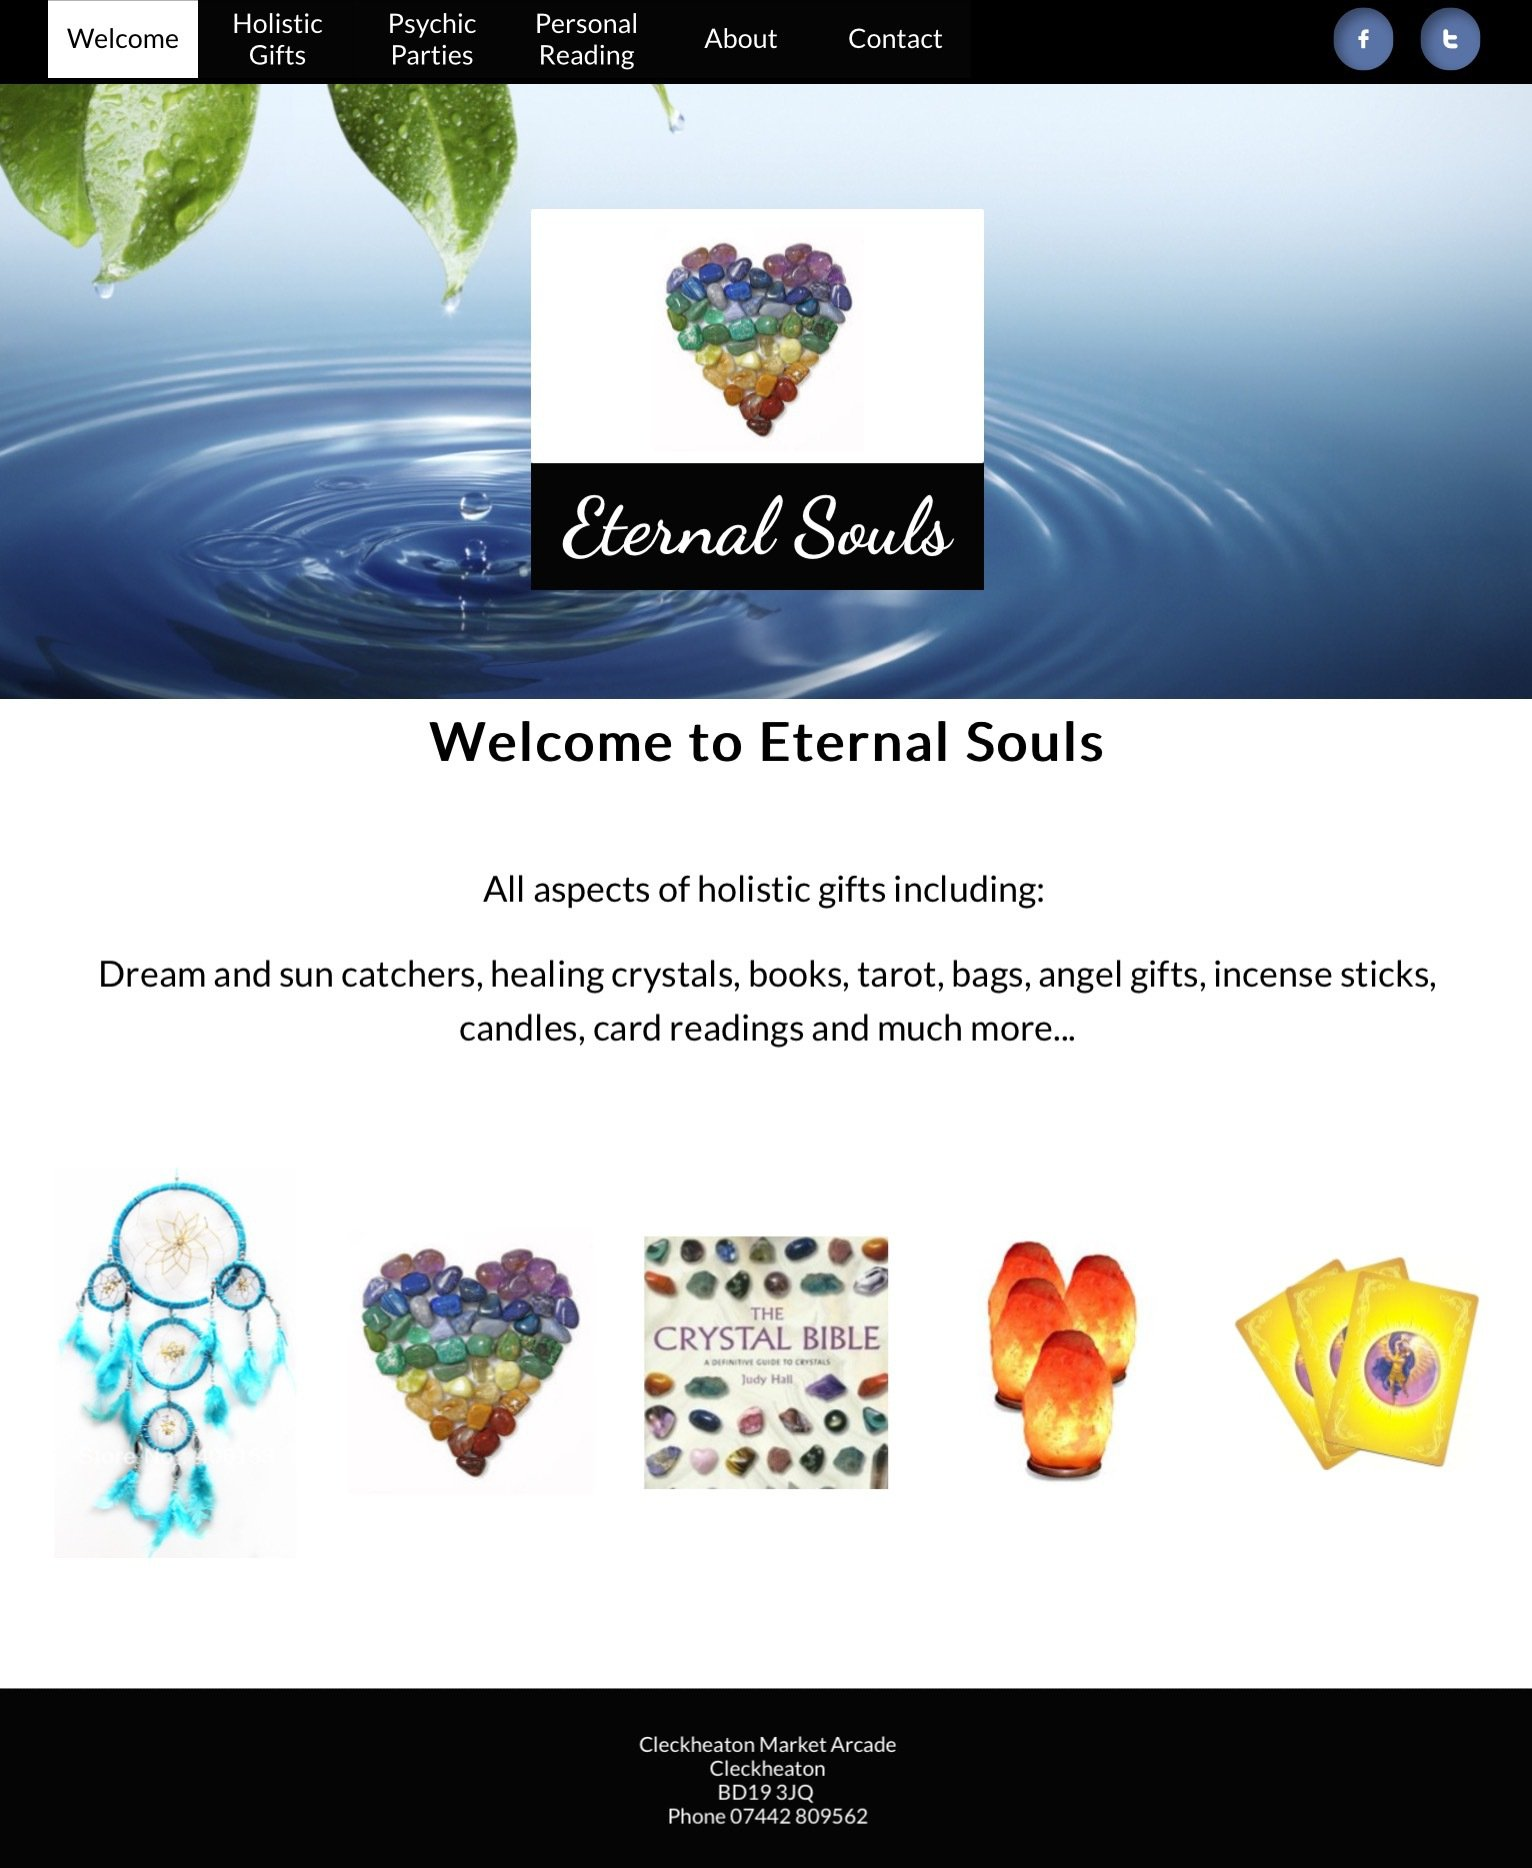 ETERNAL SOULS